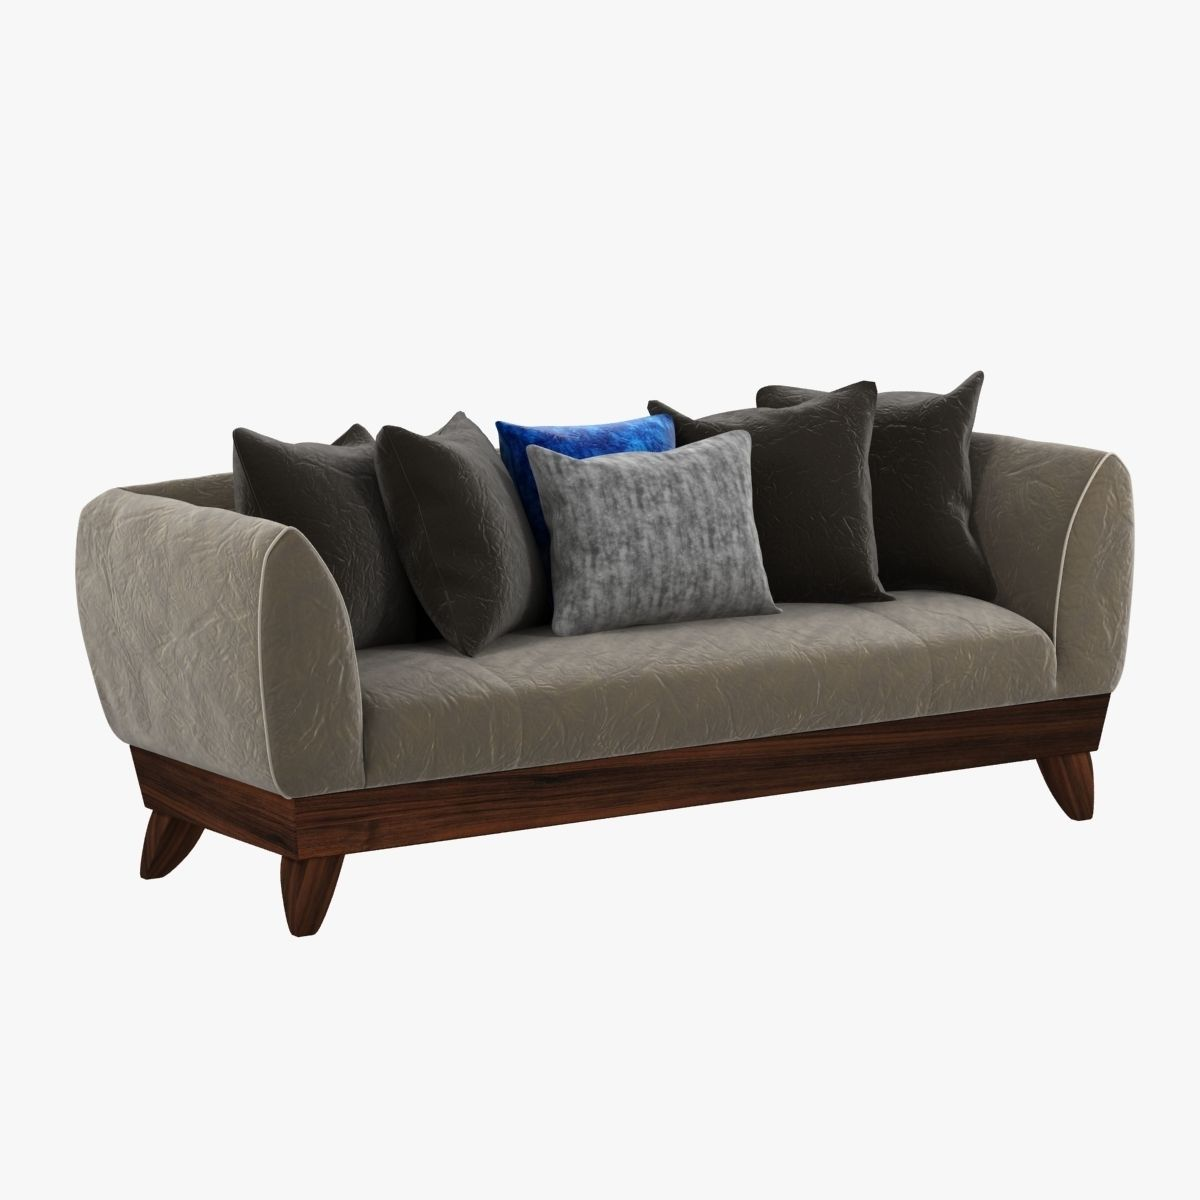 Custom Made Sofa 3d Model Max Obj 3ds Fbx